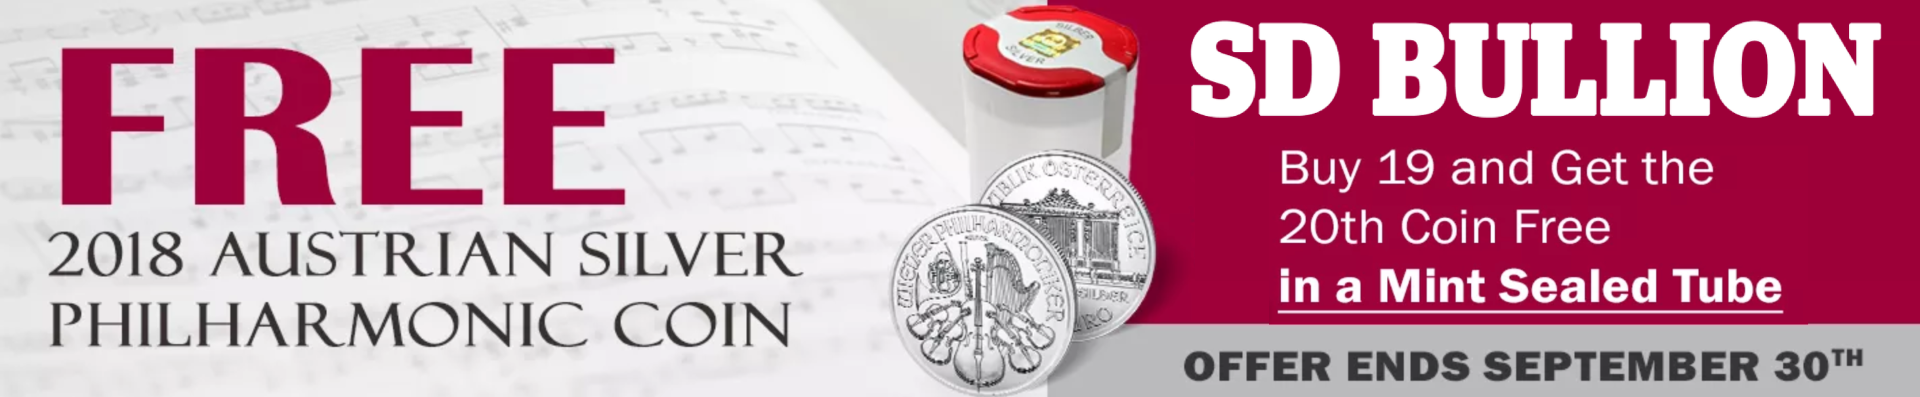 Emerging Market Currency Chaos | Silver Fortune Silver Philharmonic Coin Sale at SD Bullion SDBullion.com